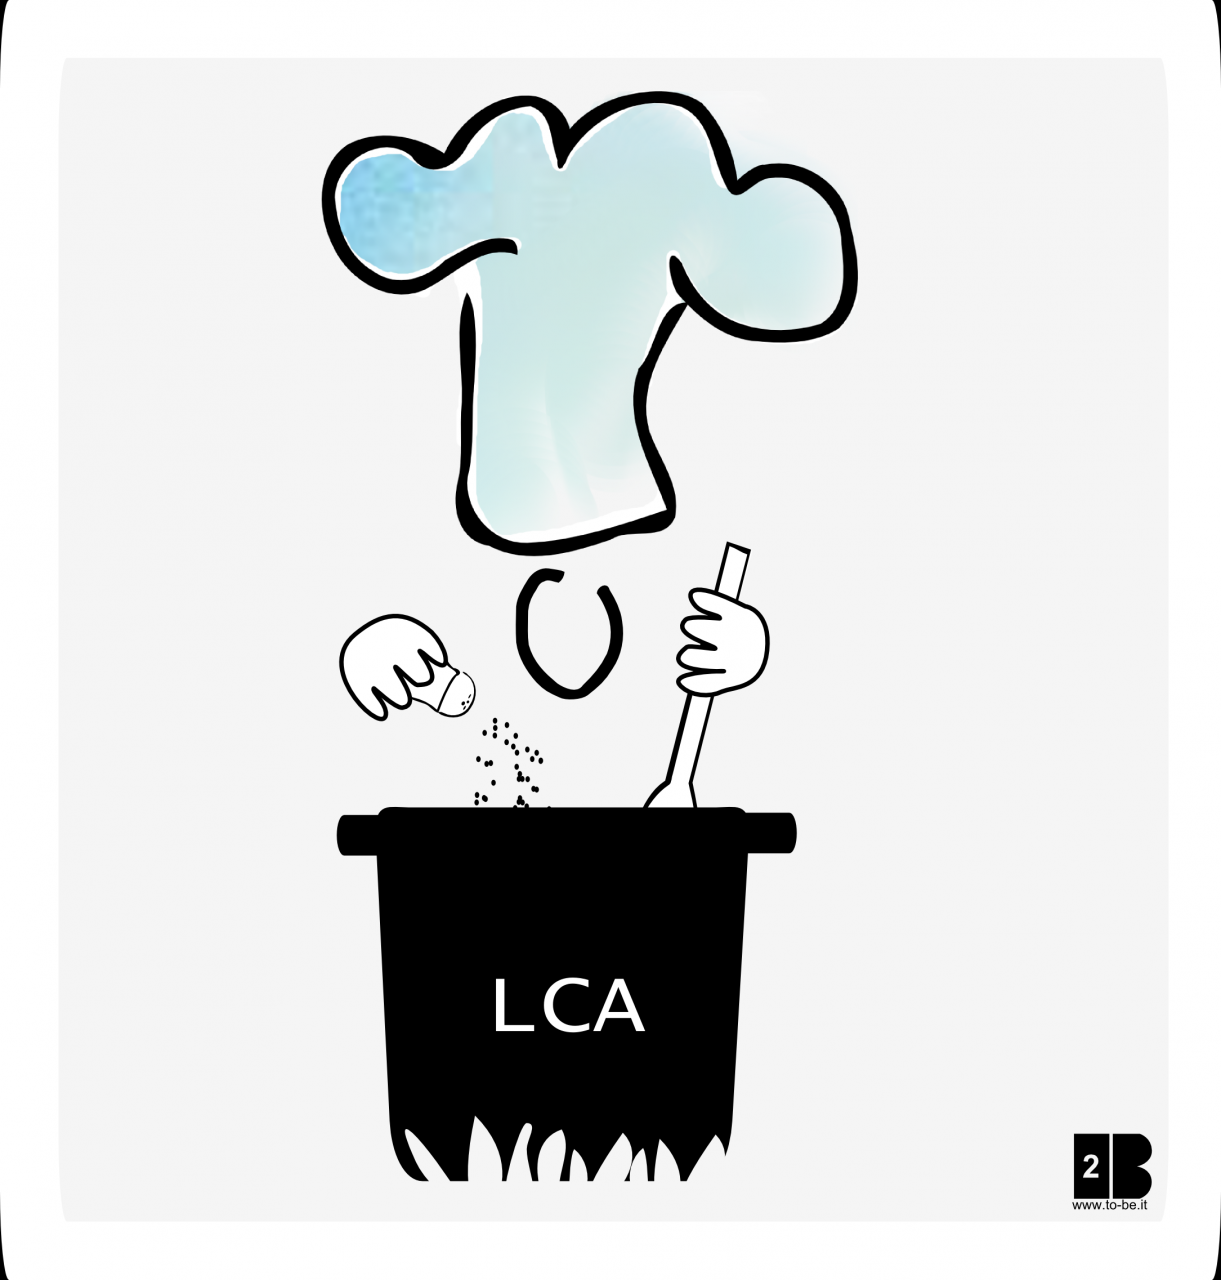 Recepice for transparency in LCA - Sustainability metrics